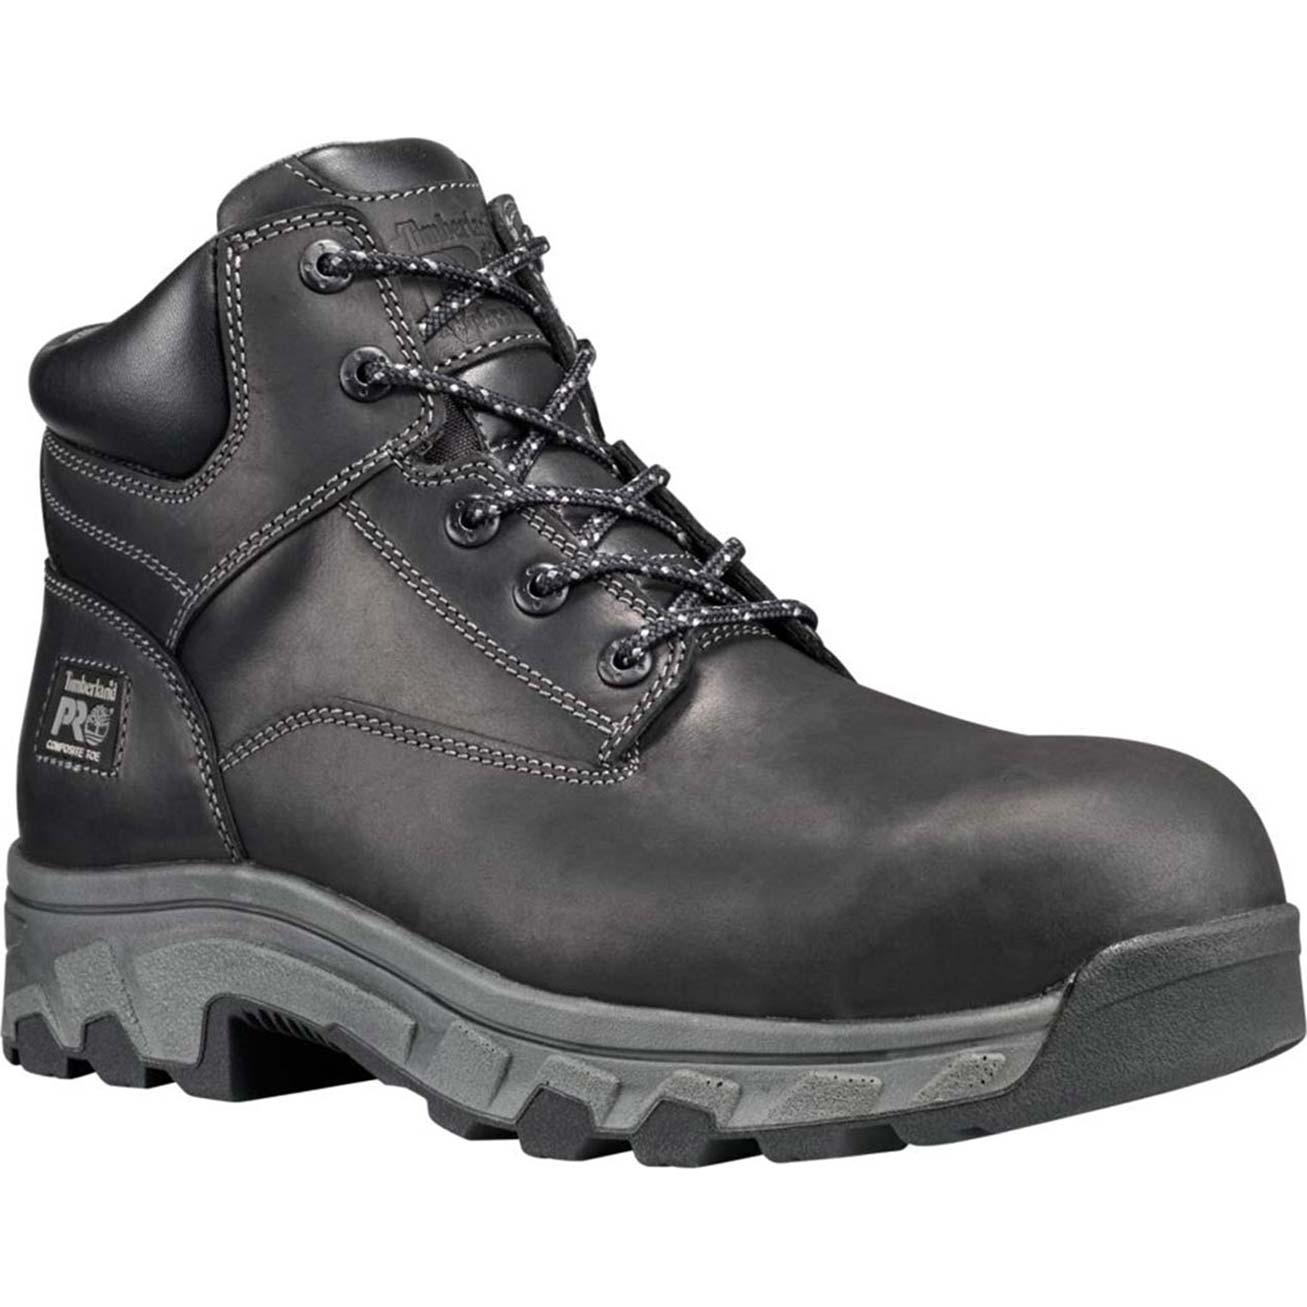 c5053c86a74 Timberland PRO Workstead Composite Toe Static-Dissipative Work Boot